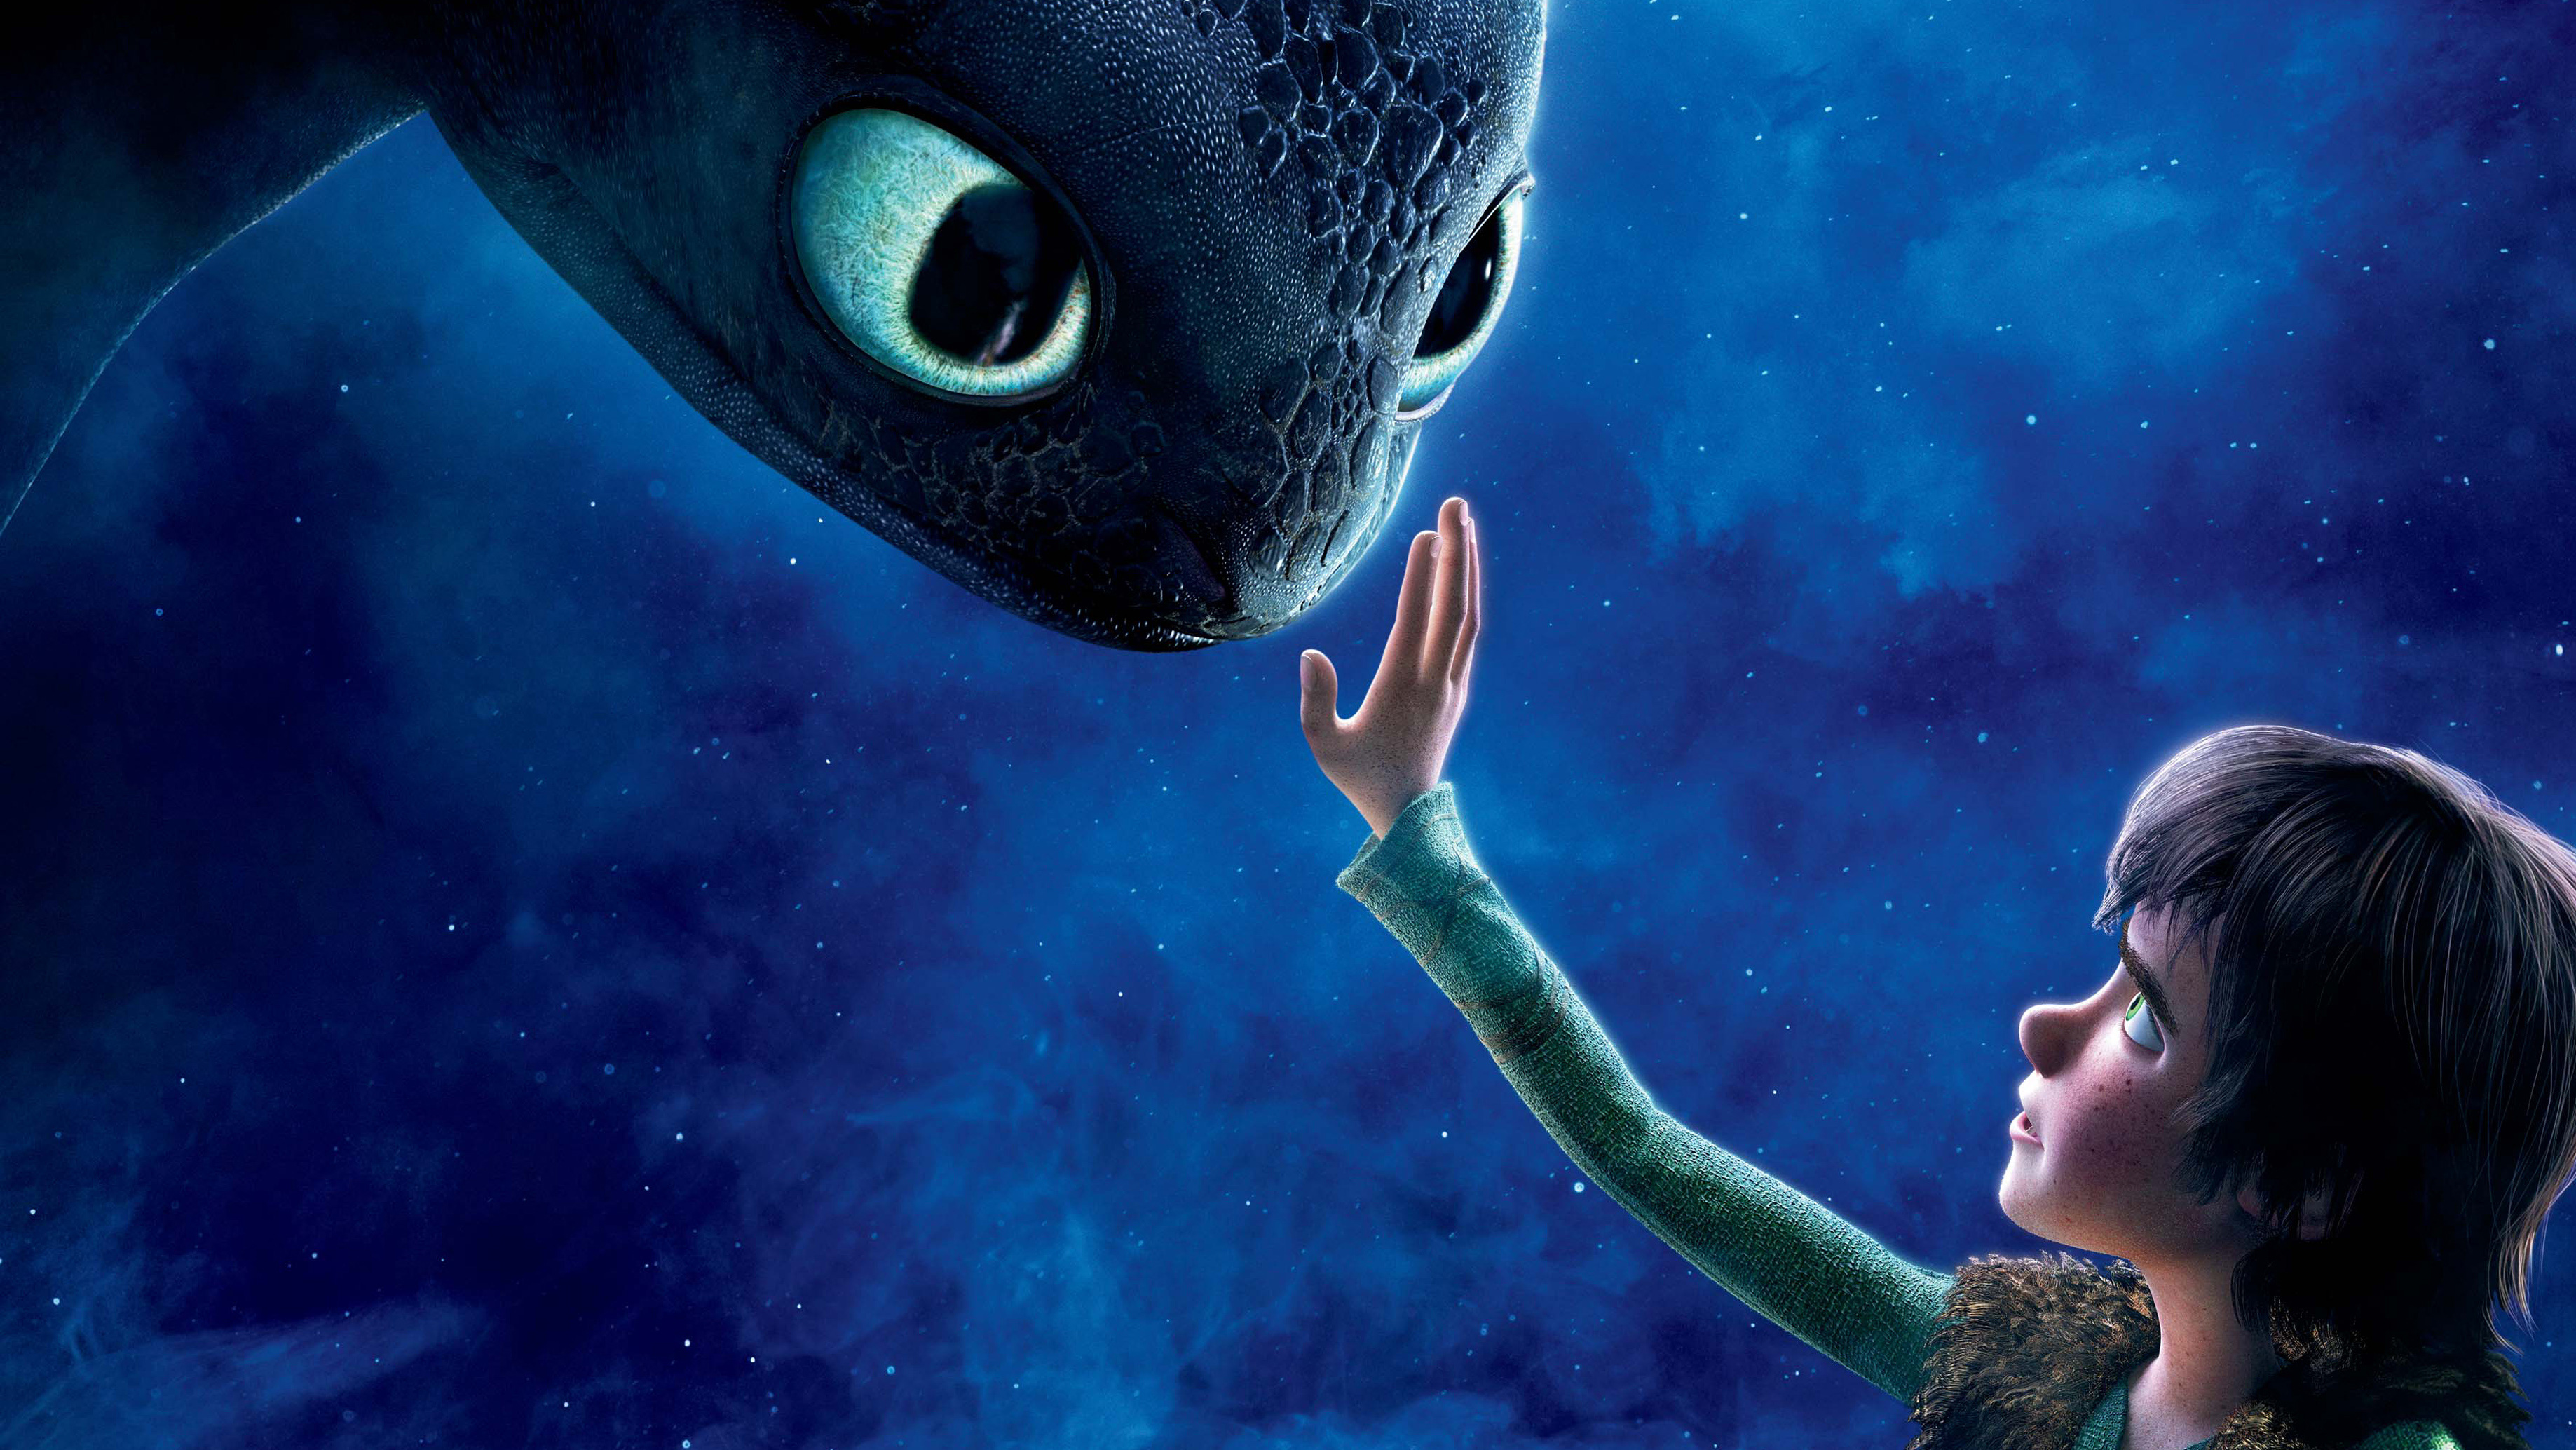 Toothless How To Train Your Dragon, HD Movies, 4k ...